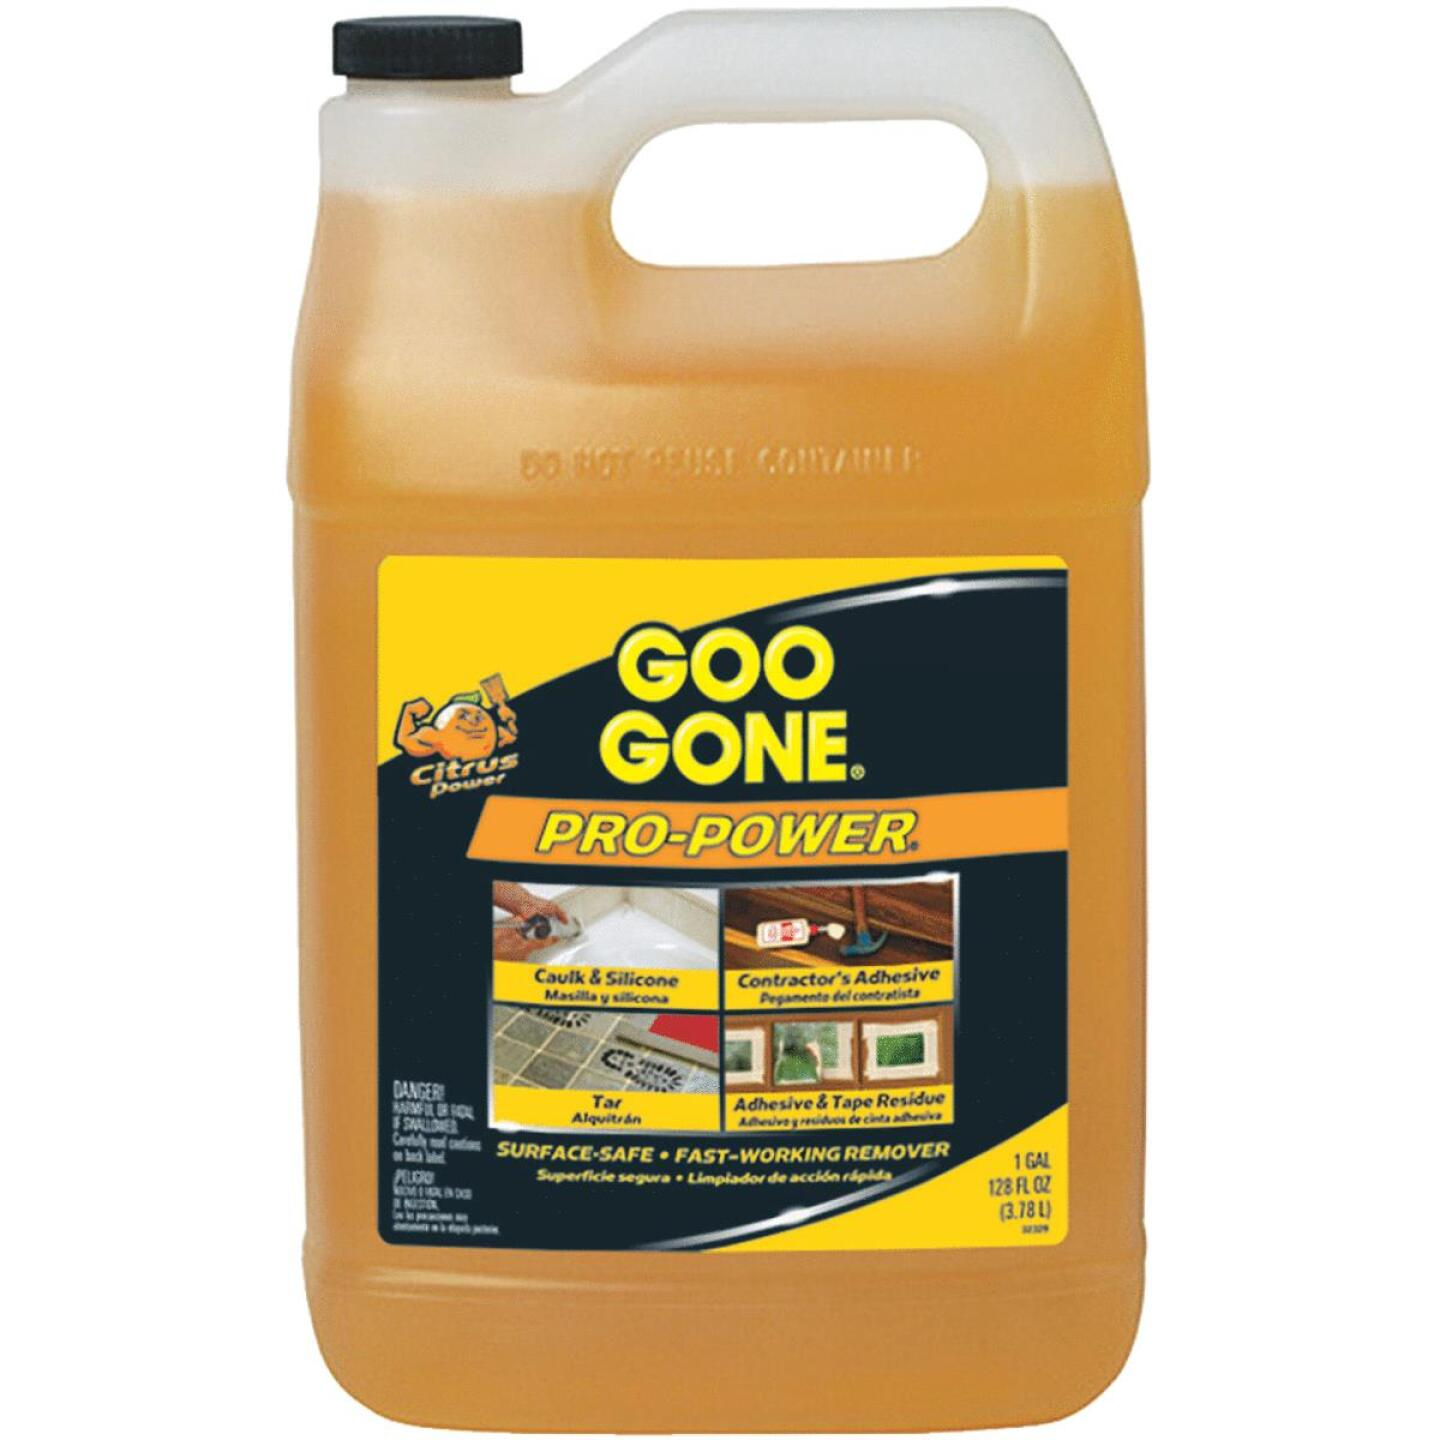 Goo Gone 1 Gal. Pro-Power Adhesive Remover Image 266